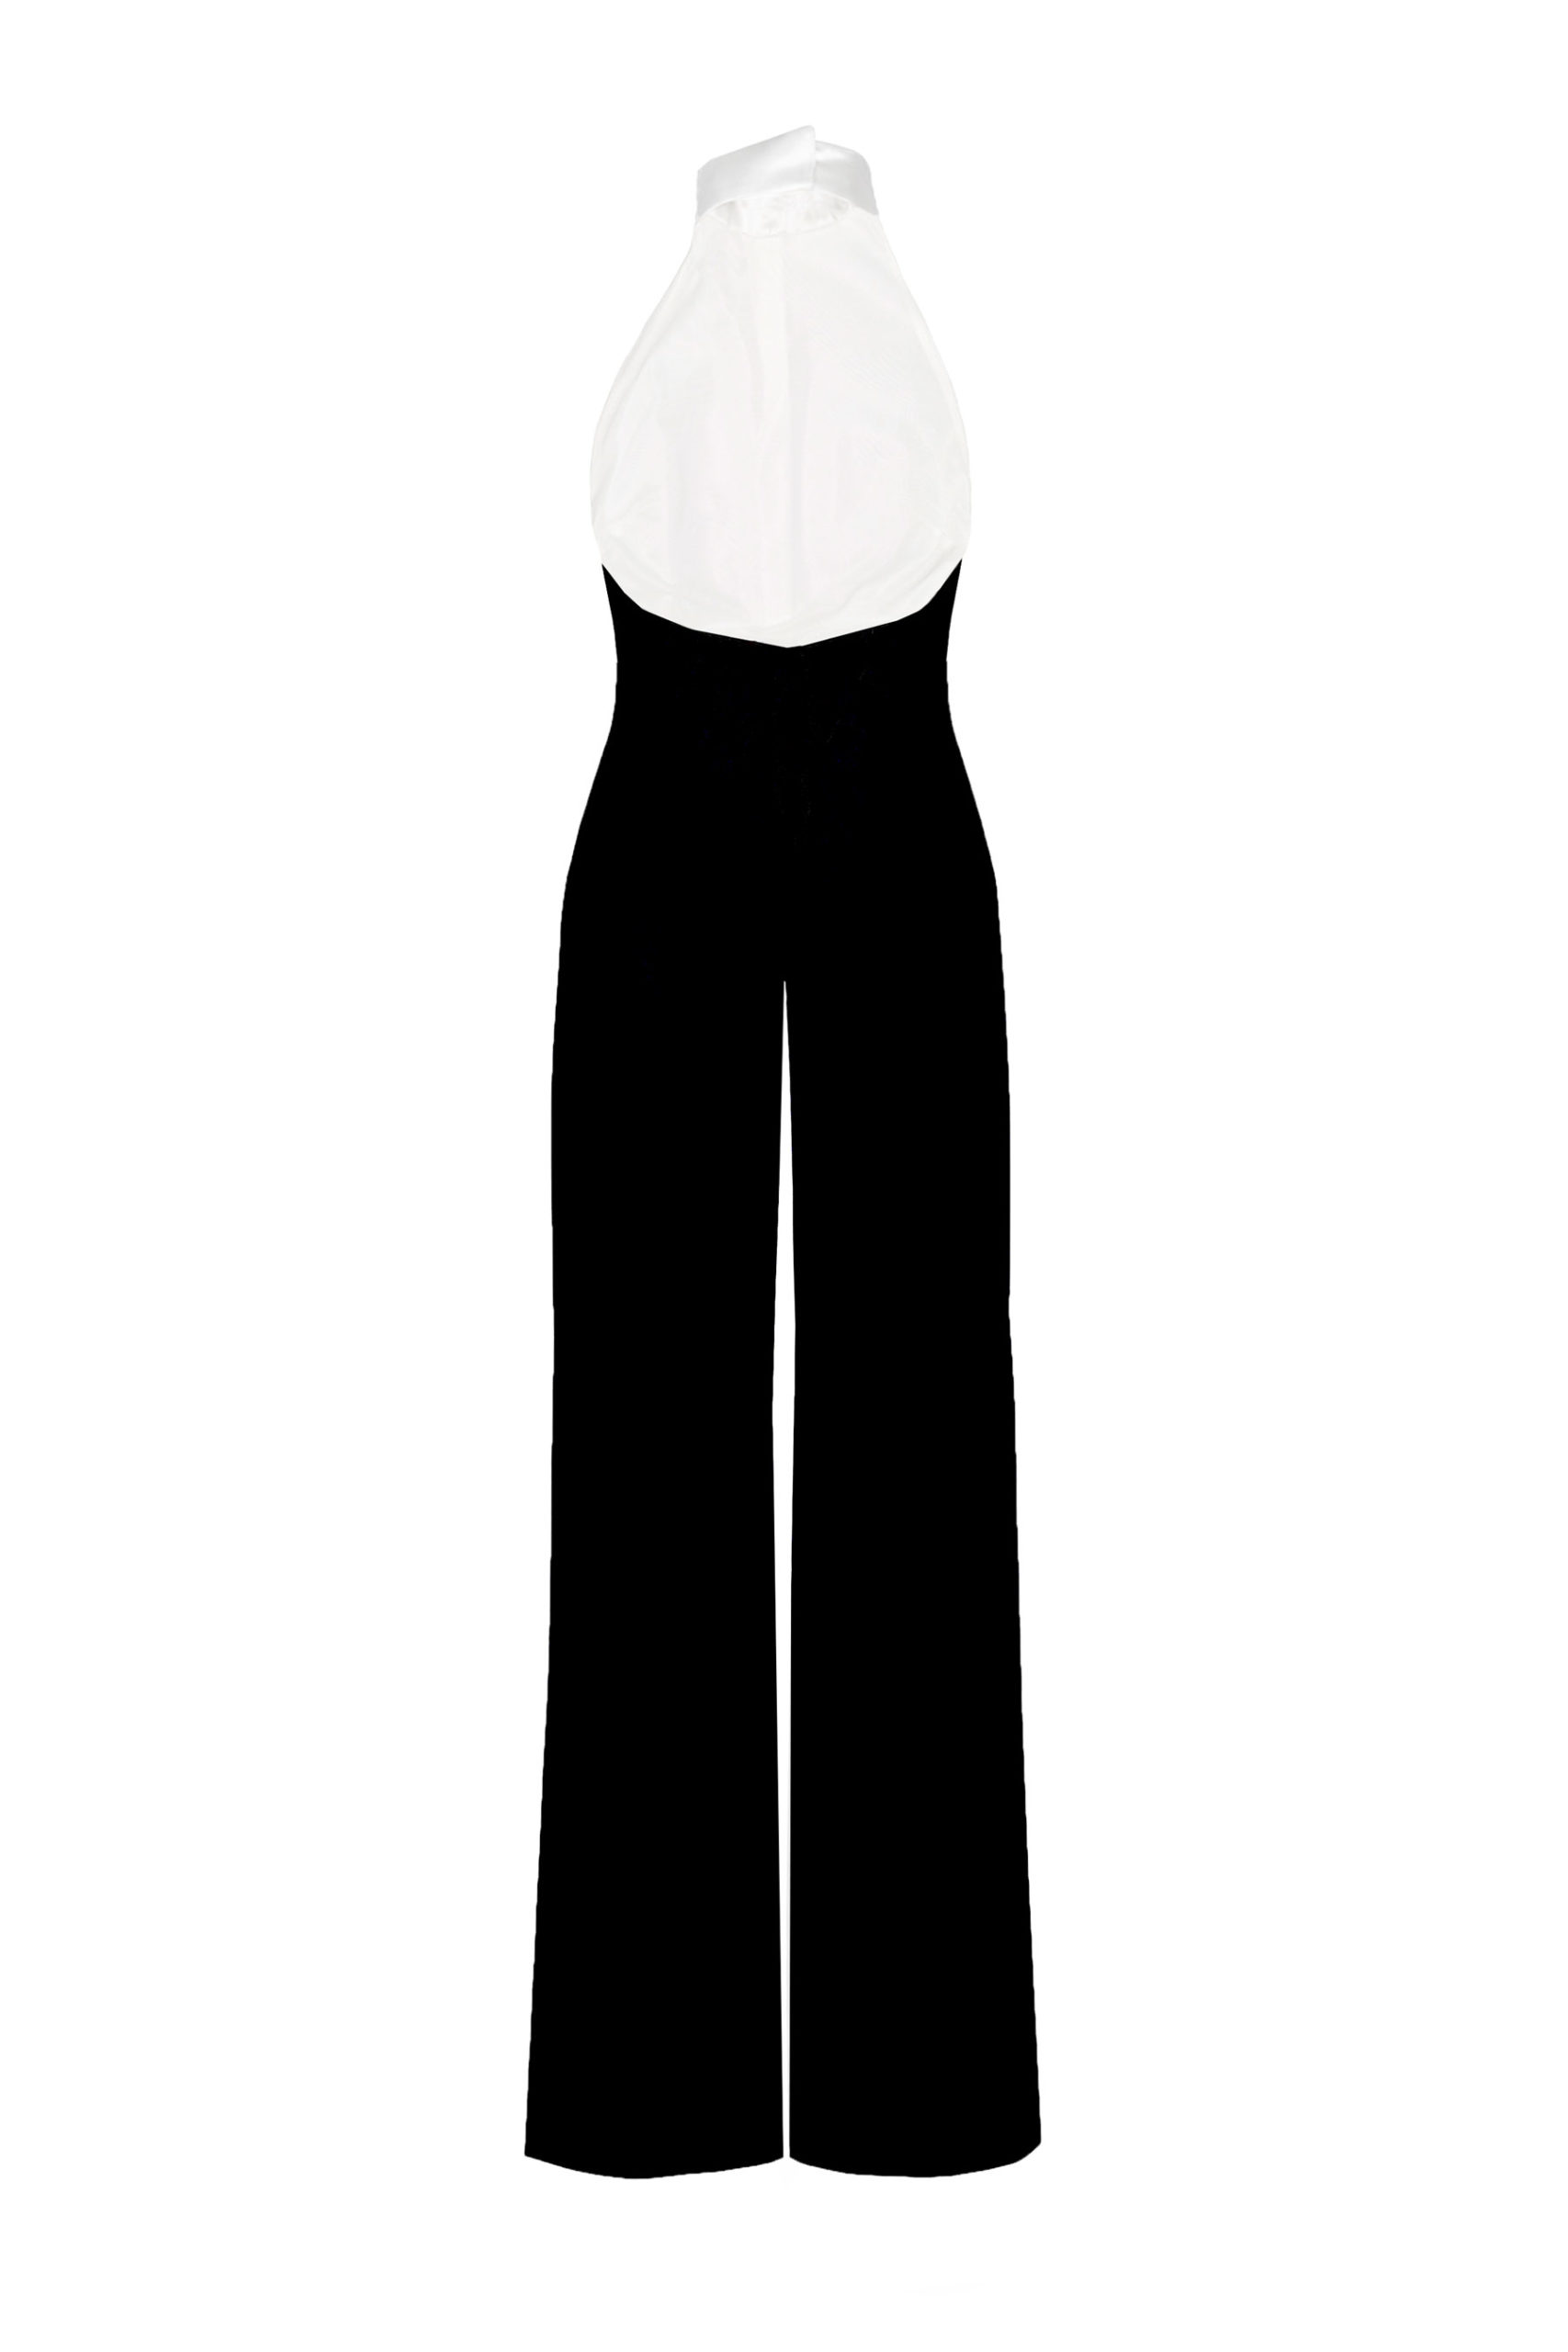 The Penguin black jumpsuit black